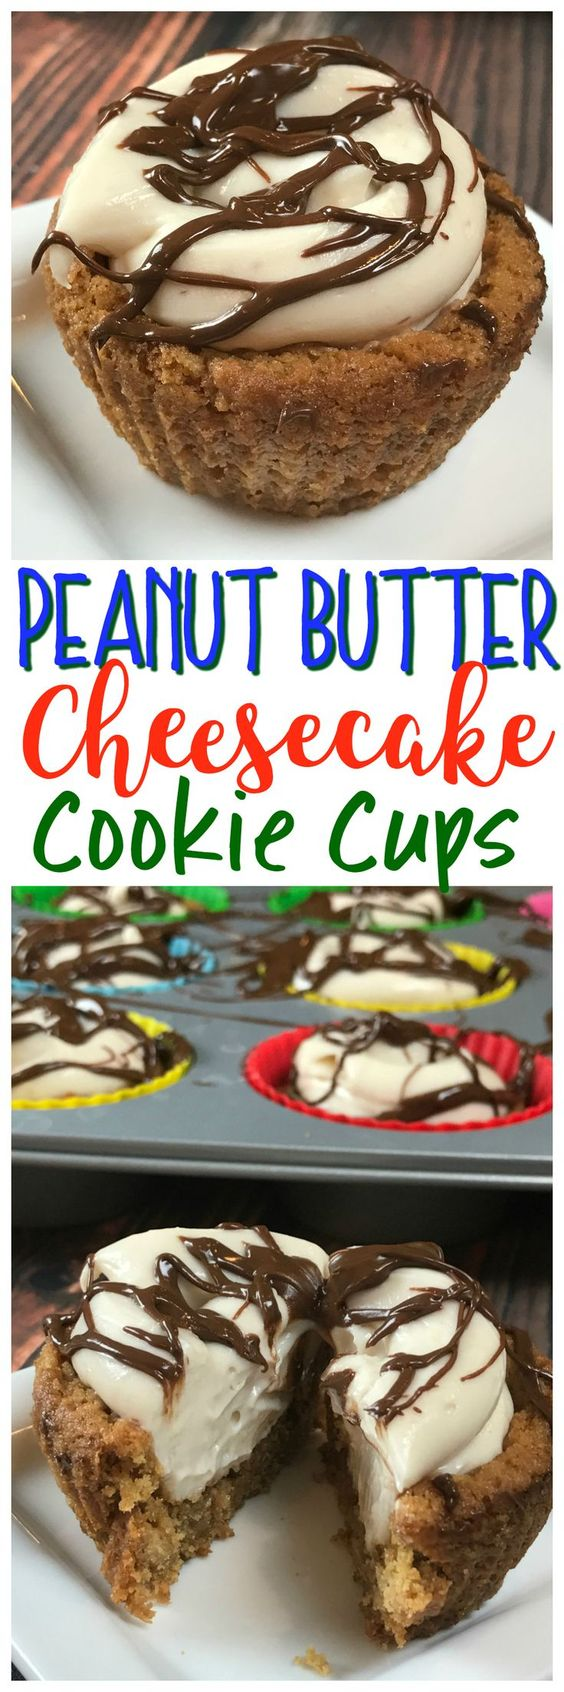 This Peanut Butter Cream Cheese Cookie Cup is SO easy to make and absolutely delicious!